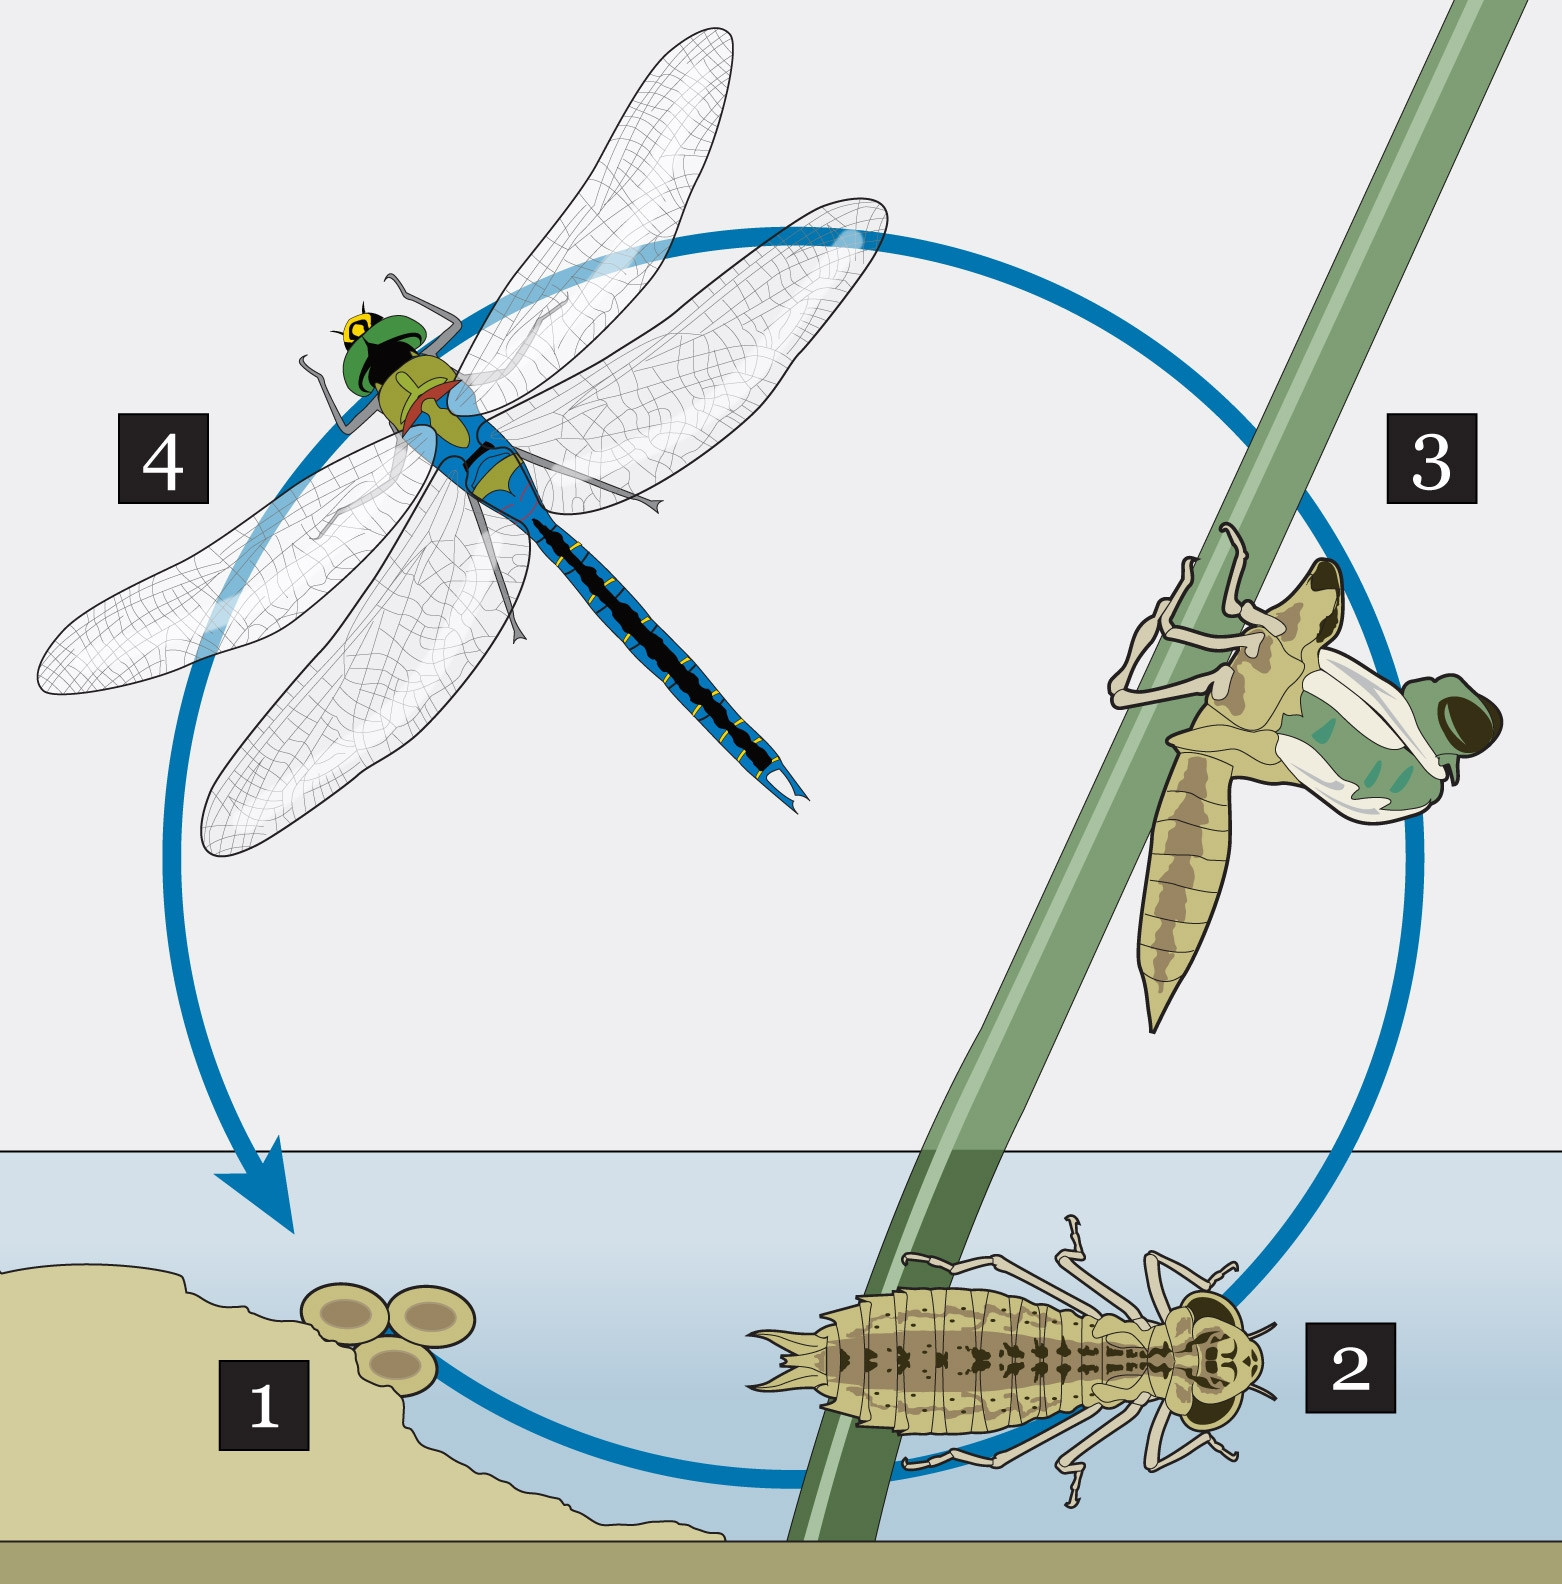 water cycle coloring page - ct met 0805 dragonfly facts graphic story